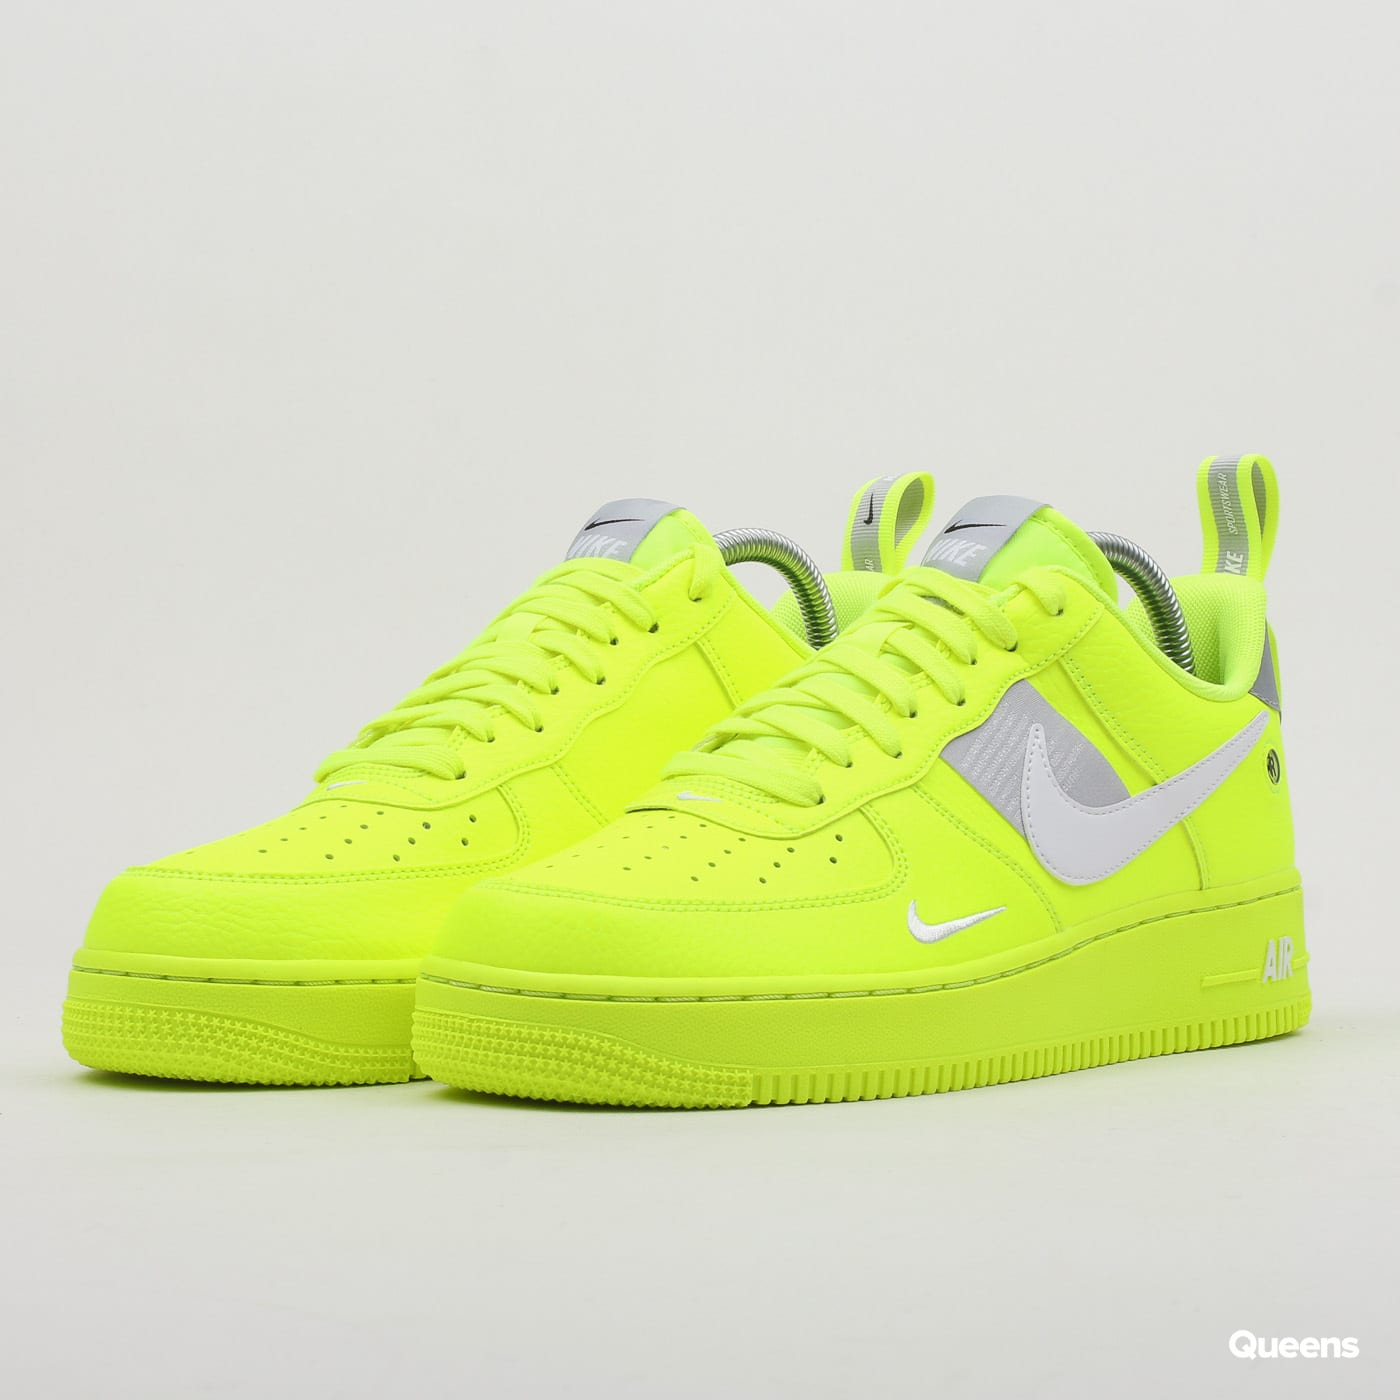 df38698cc06 Boty Nike Air Force 1  07 LV8 Utility (AJ7747-700) – Queens 💚